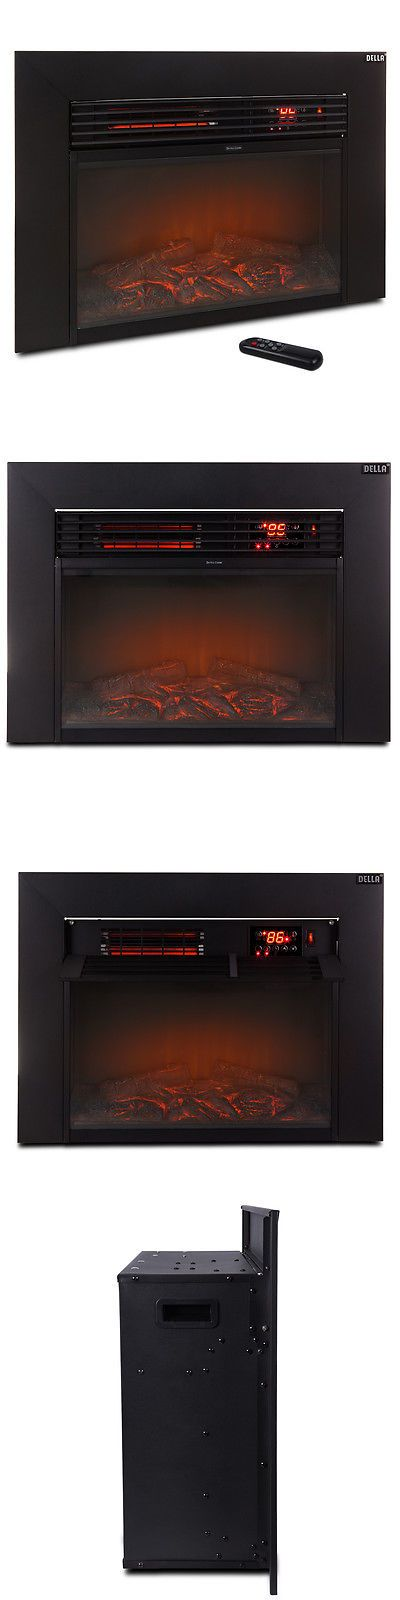 Fireplaces 175756: 1500W Electric Wall Insert Adjustable Fireplace Heater Flame Fire With Remote -> BUY IT NOW ONLY: $76.99 on eBay!